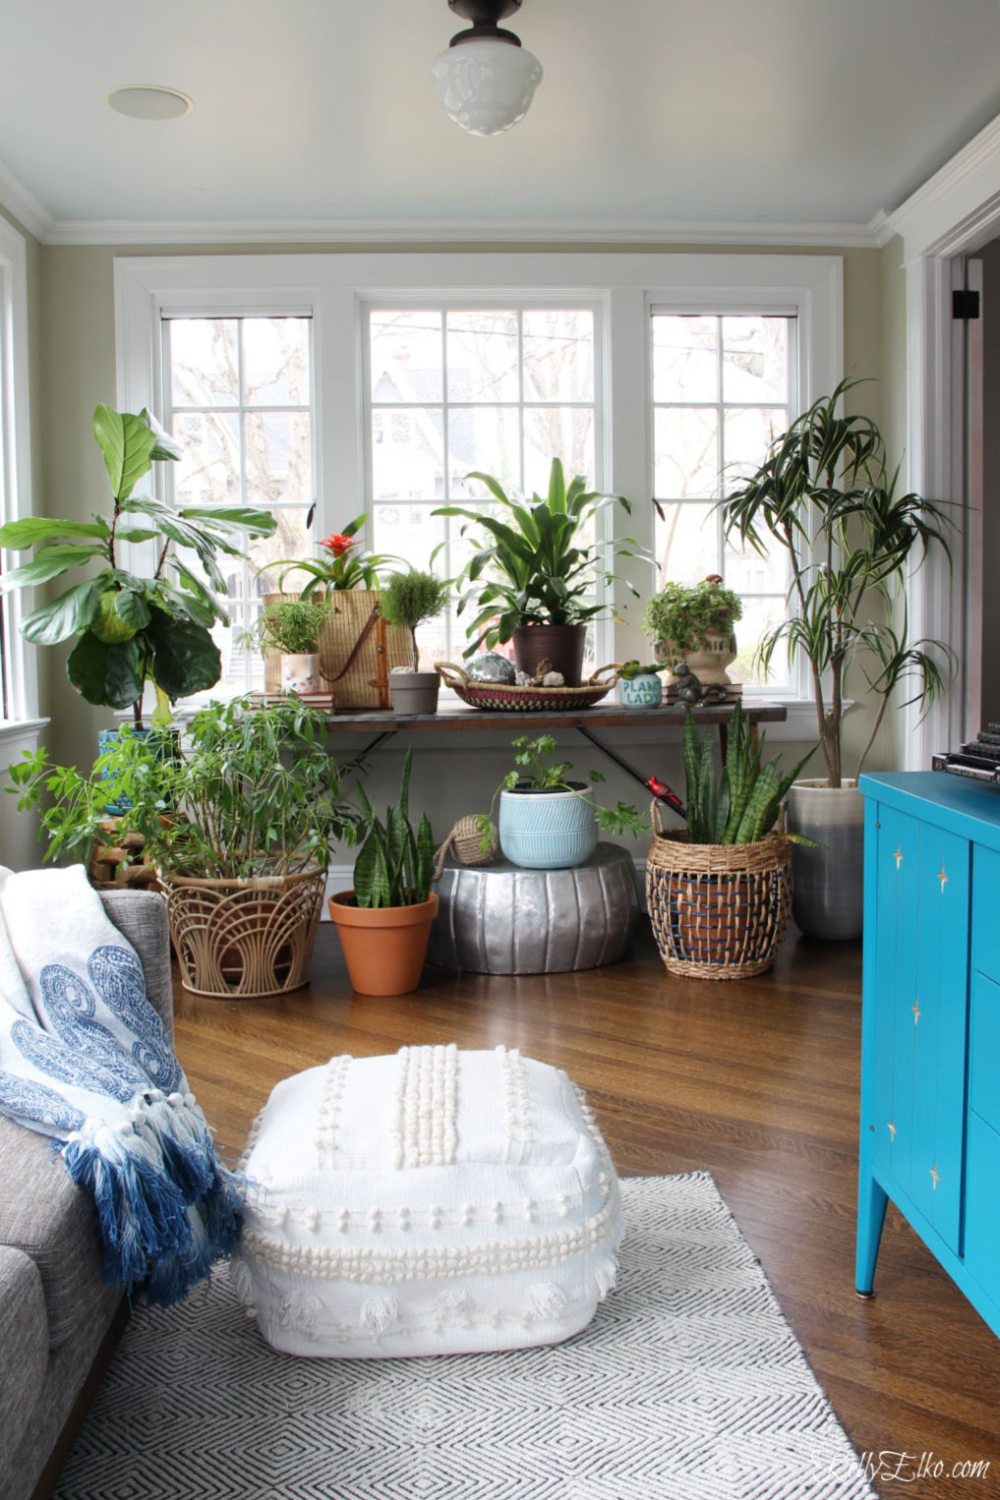 Plant Lady Sunroom - love this light filled room with houseplants, baskets, planters and vintage finds kellyelko.com #plants #houseplants #sunroom #jungalow #jungalowstyle #bohostyle #bohodecor #interiordesign #planters #vintagedecor #plantlady #eclecticdecor #kellyelko